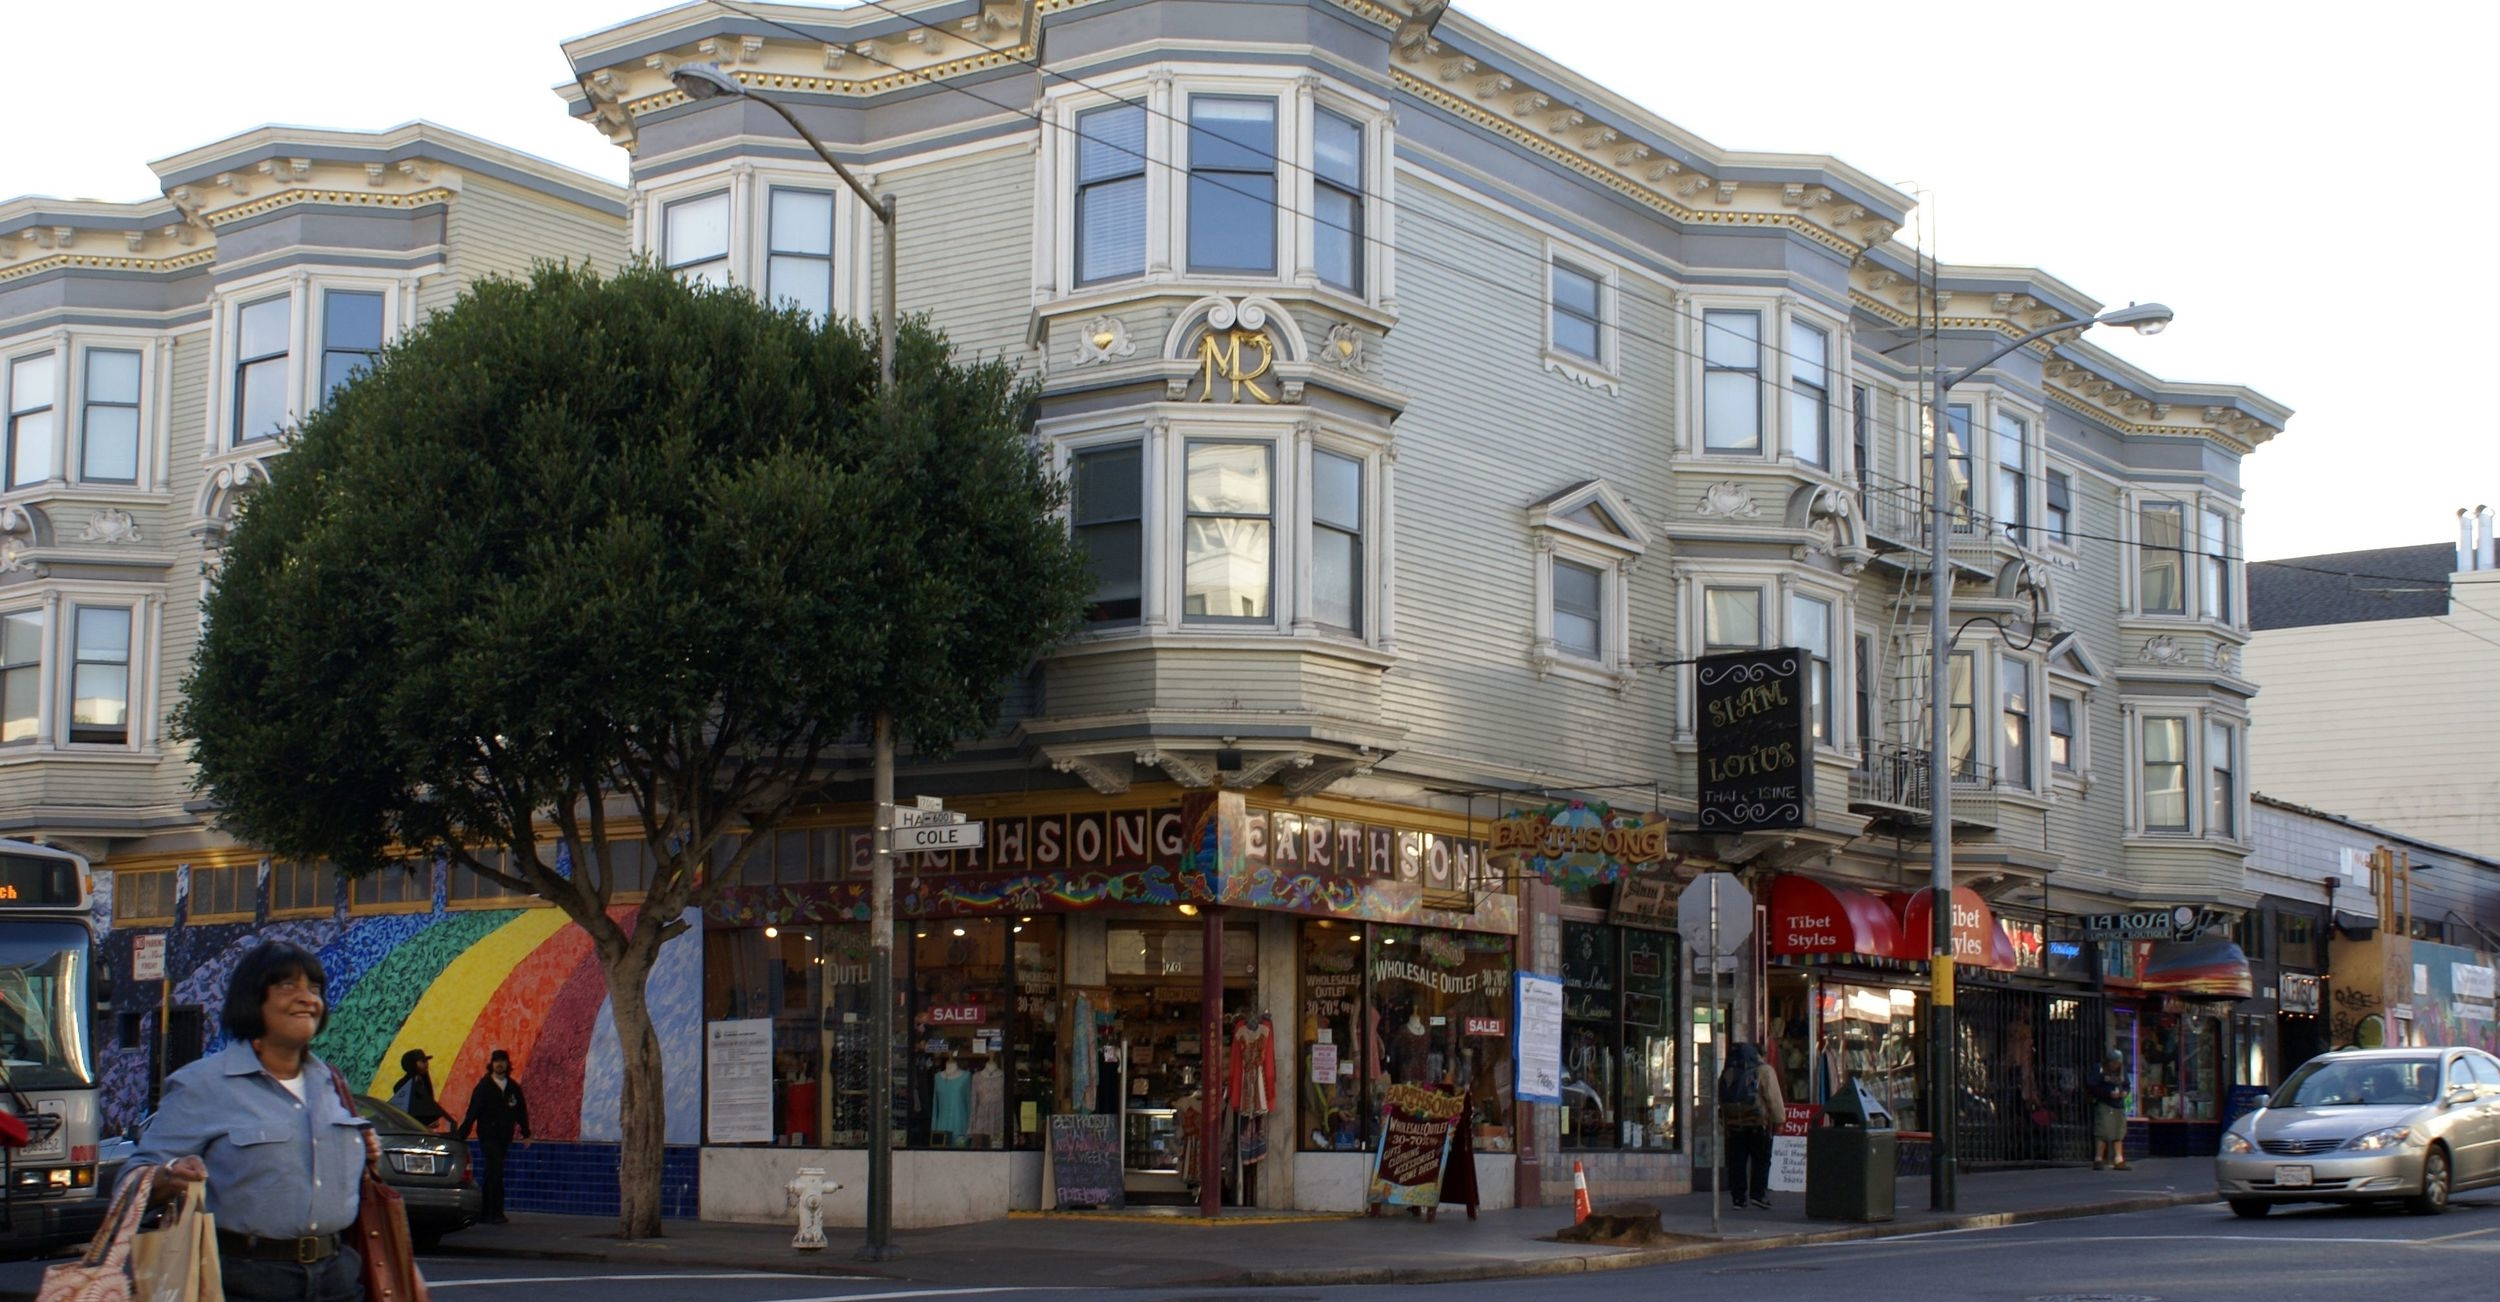 Nearby Haight Street is lined with stores and restaurants reminiscent of its counter-culture past.